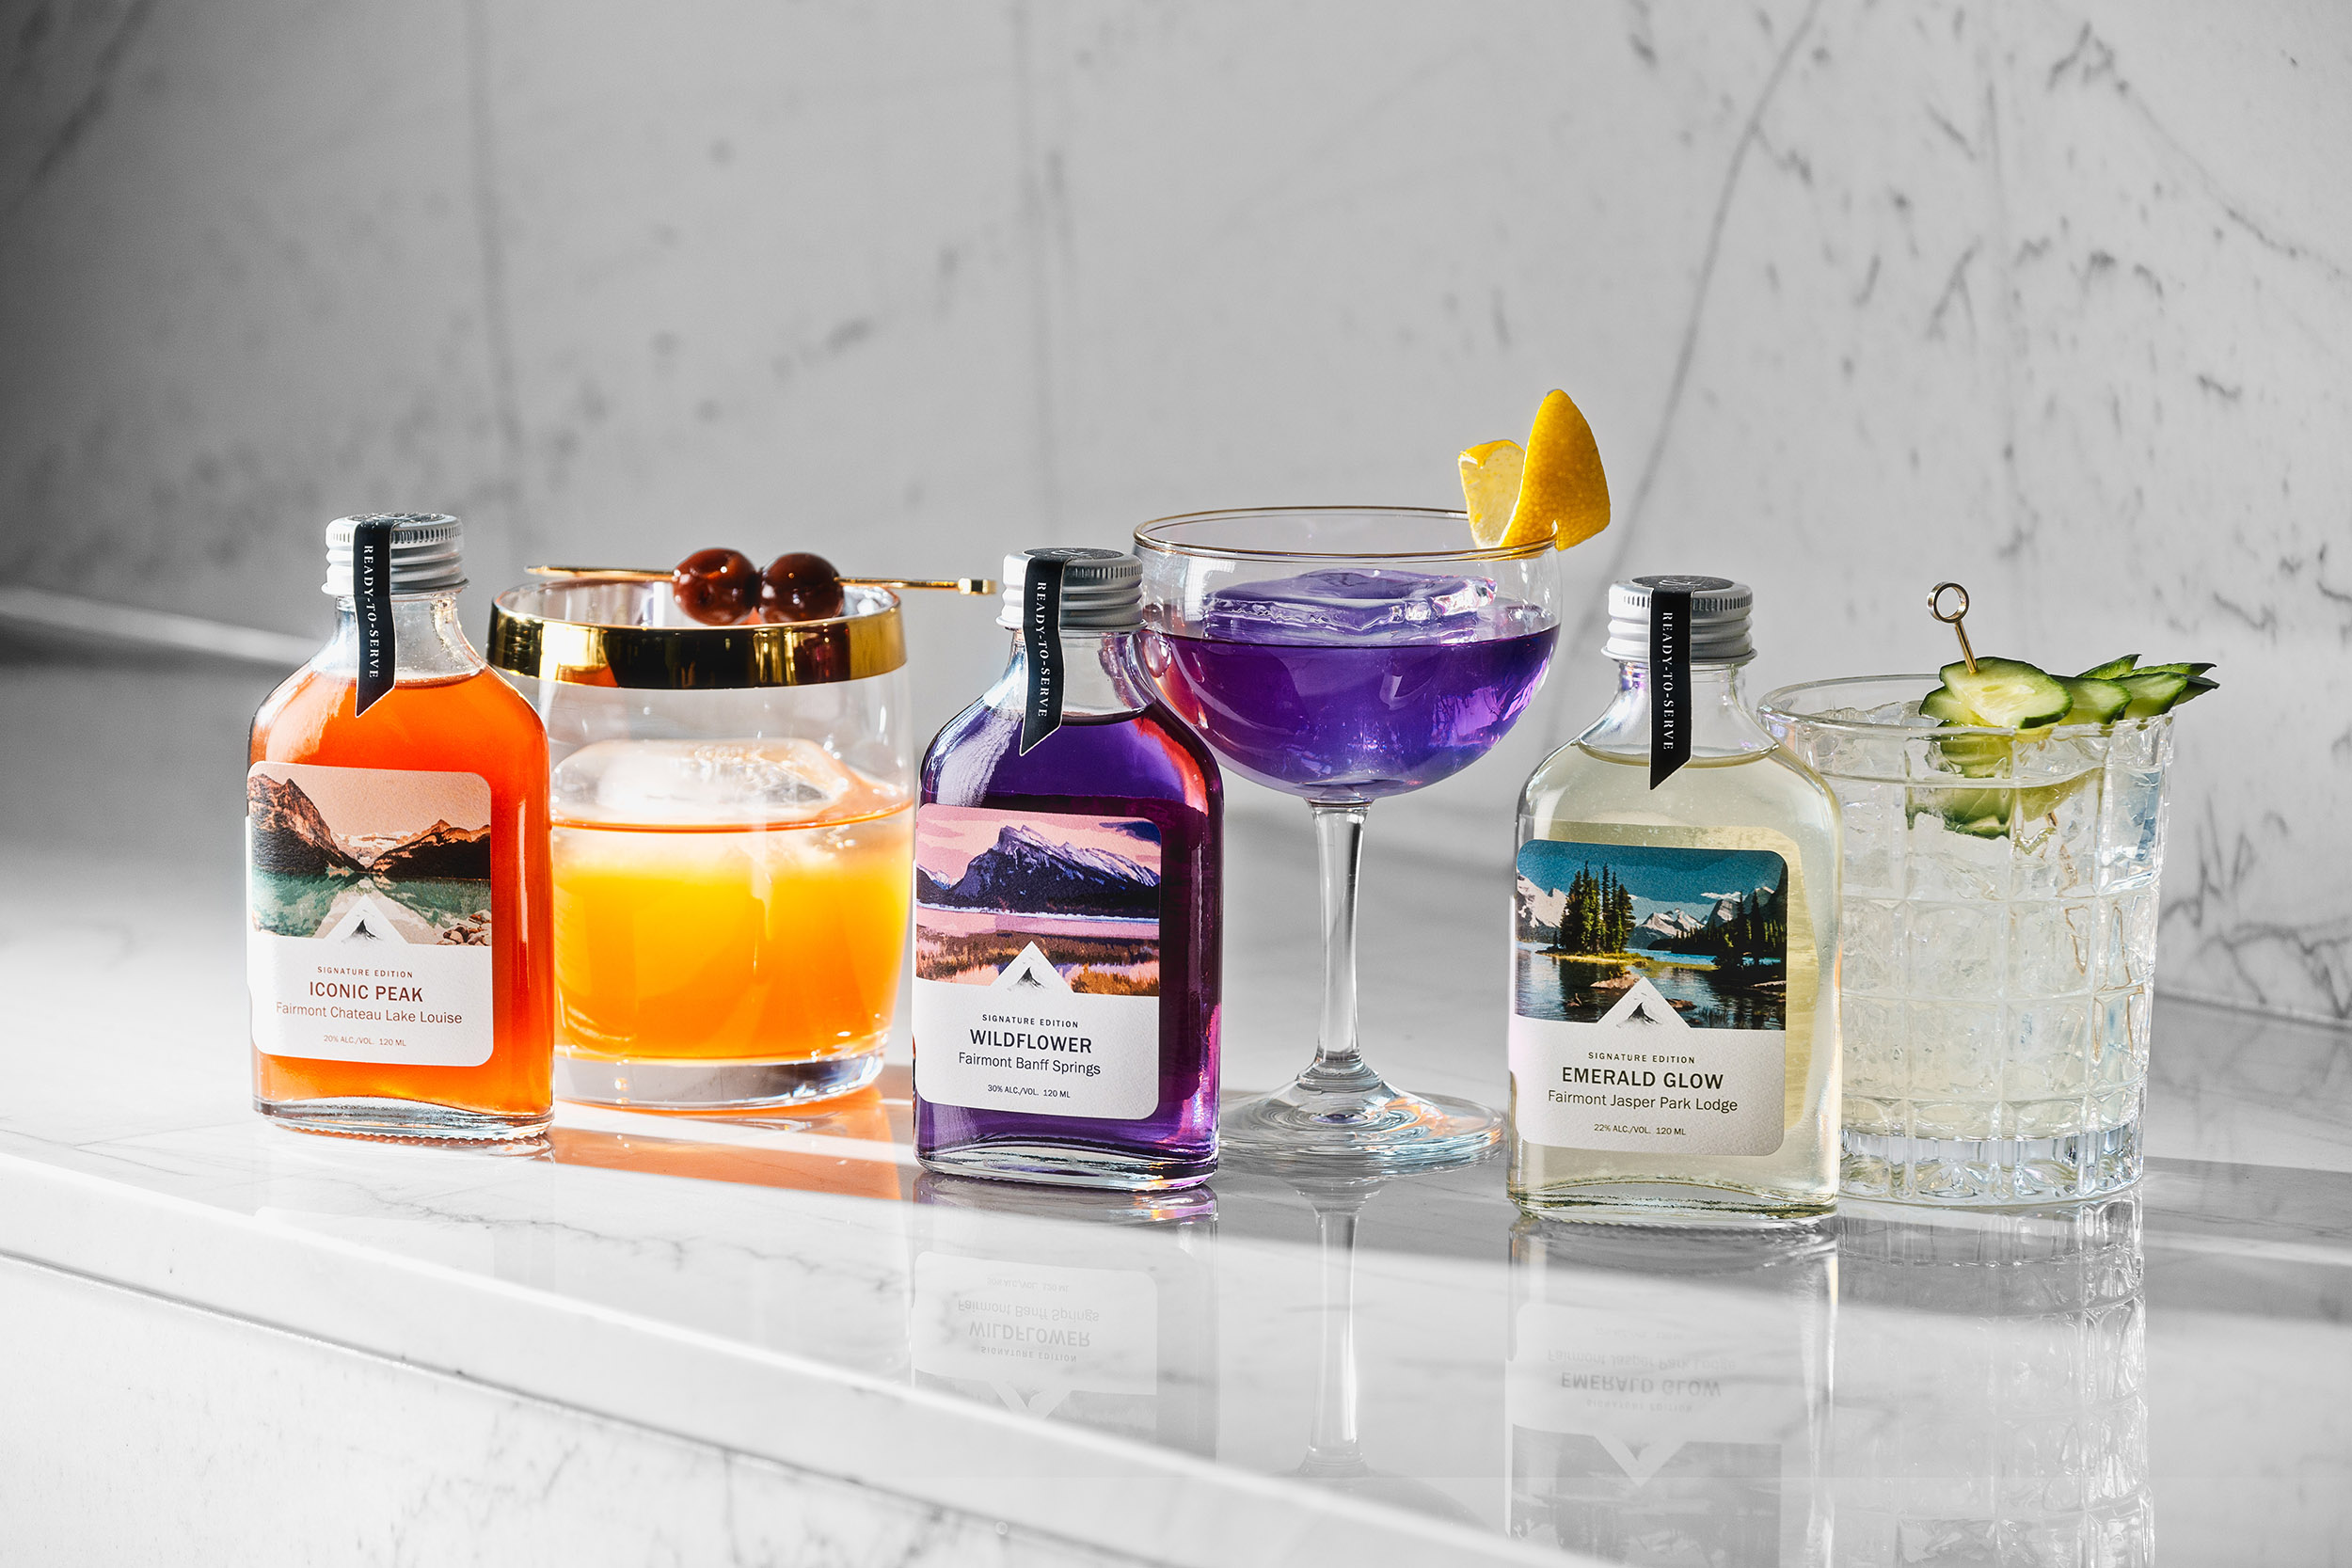 A collection of three bottled cocktails from Fairmont Hotels in Canada's Western Mountain Region are displayed in bright light with colours of orange, purple and pale green.